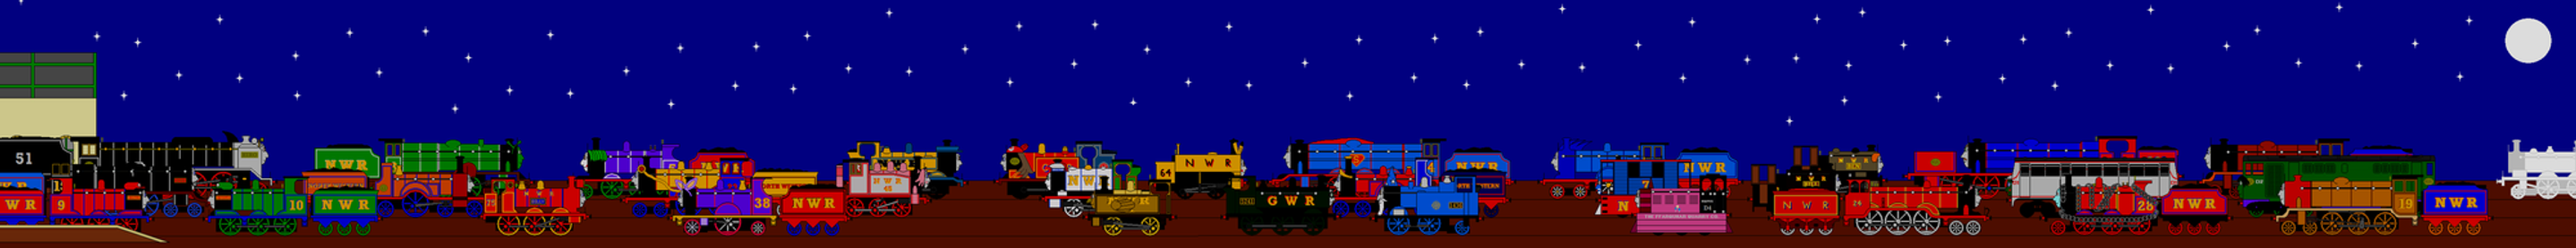 The North Western Railway Halloween Party by LGee14 on DeviantArt